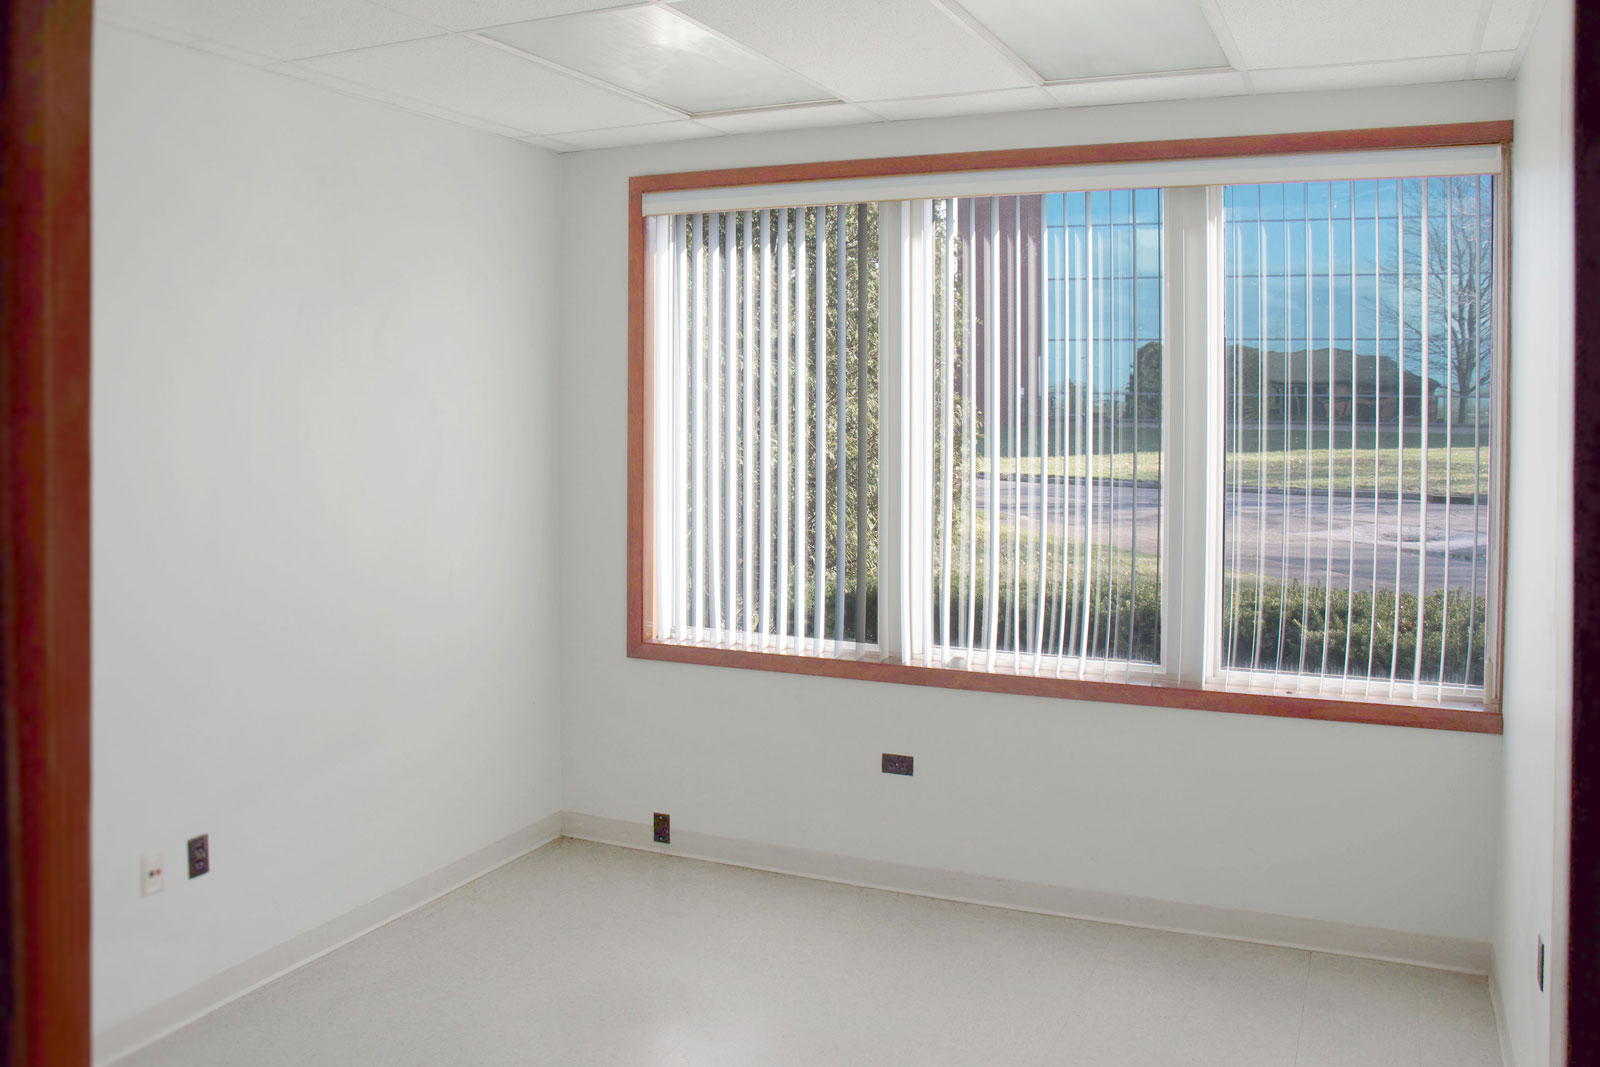 Project Office: Office Interior